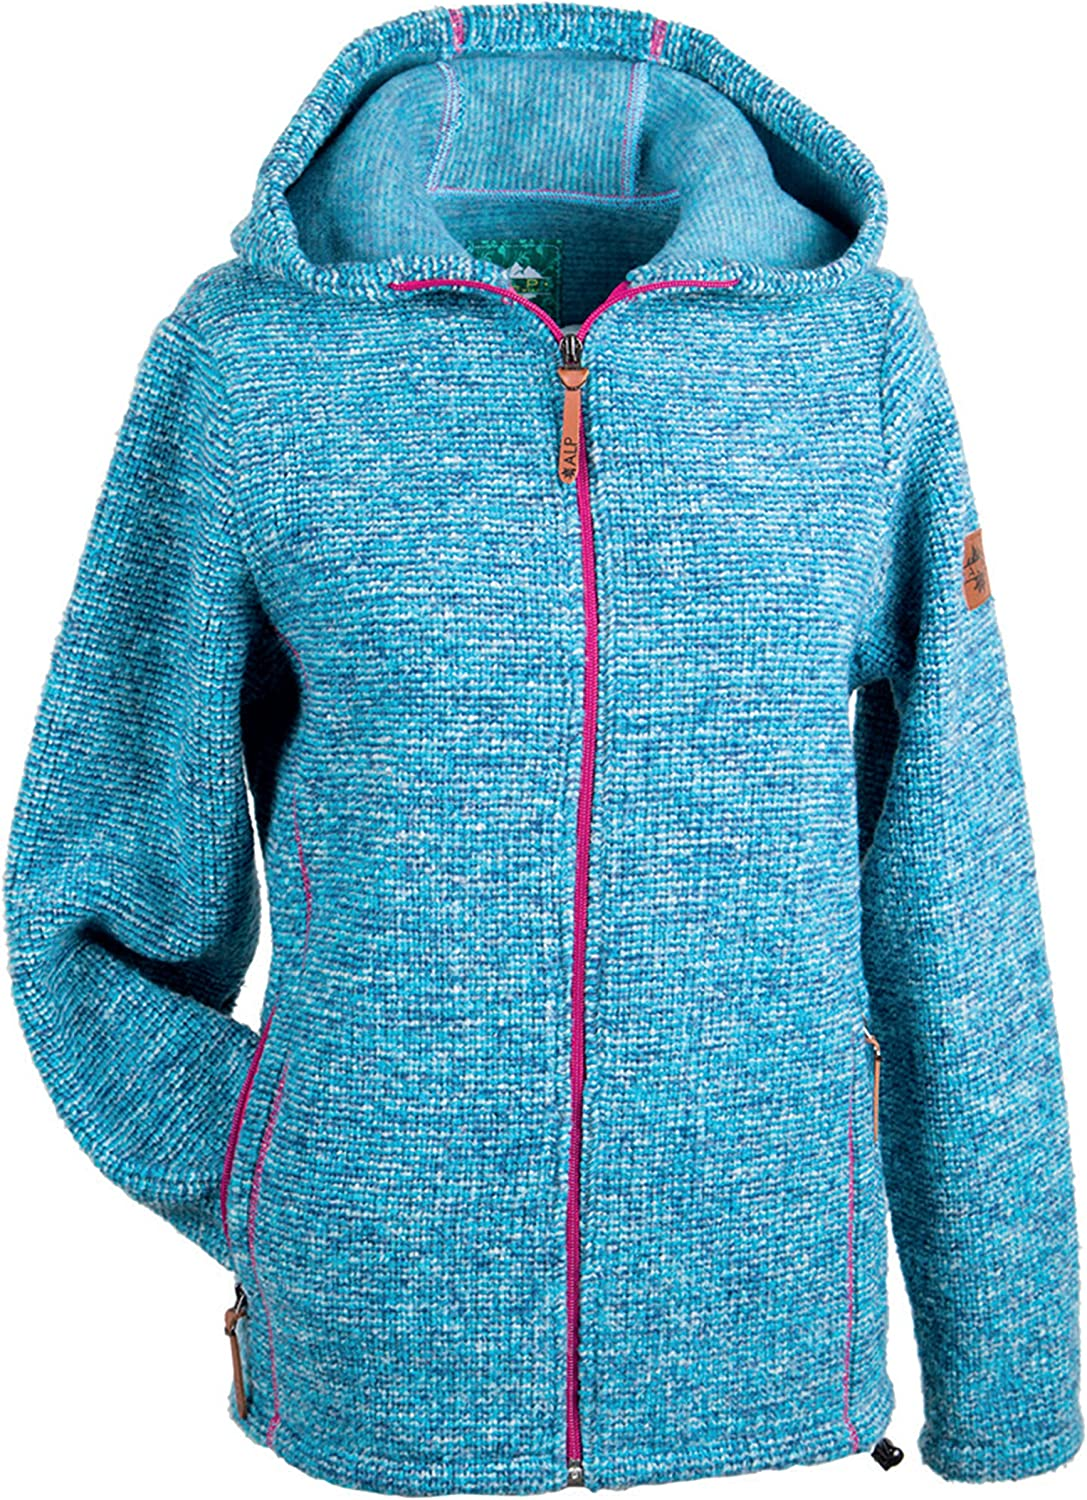 Alp by Brush Ladies Jacket WoolMix with Hood Contrasting Seams